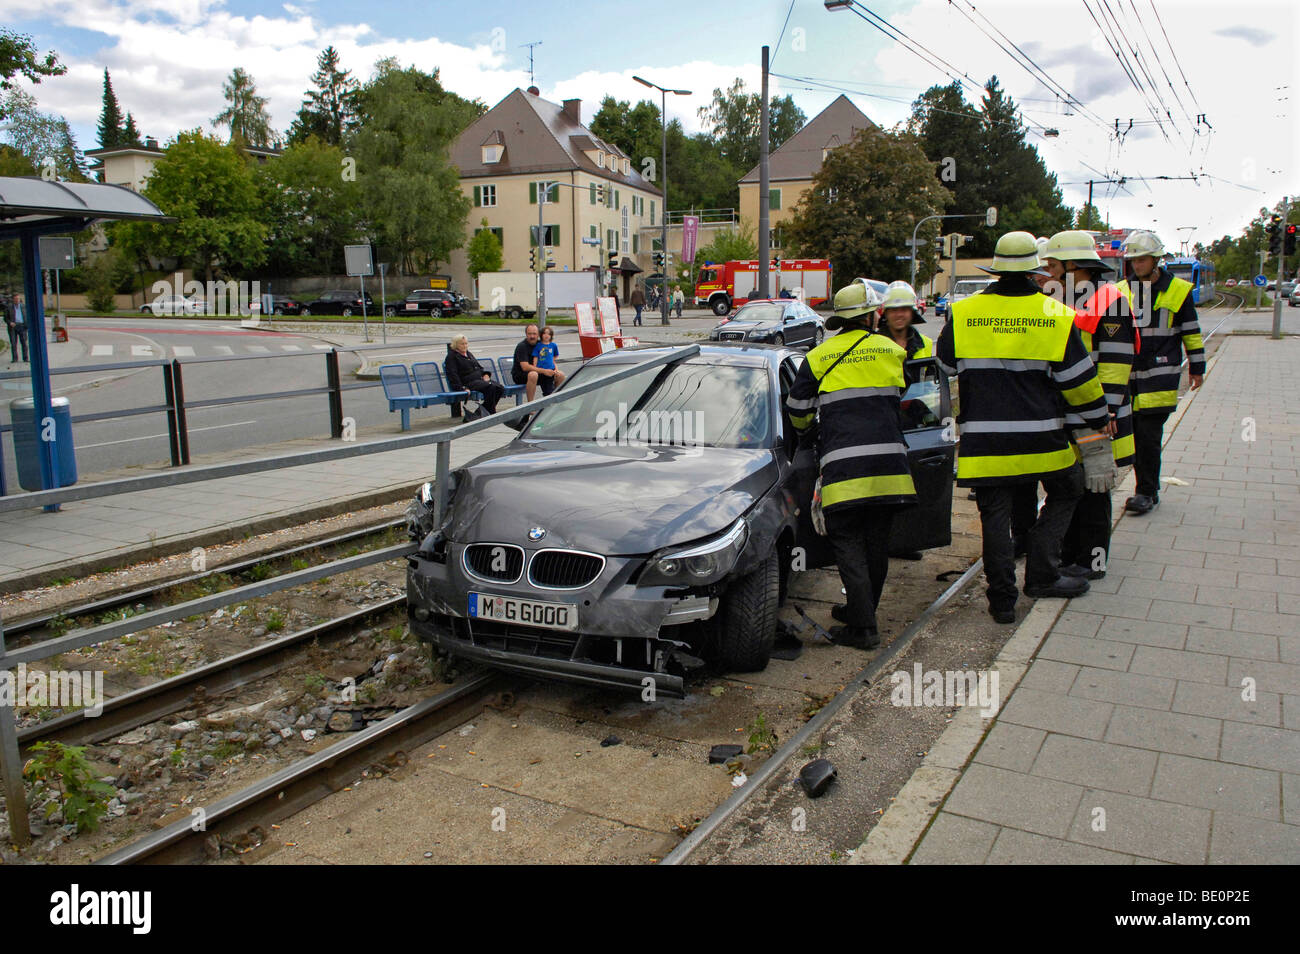 accident car on tram tracks license plate changed munich bavaria stock photo 25832870 alamy. Black Bedroom Furniture Sets. Home Design Ideas